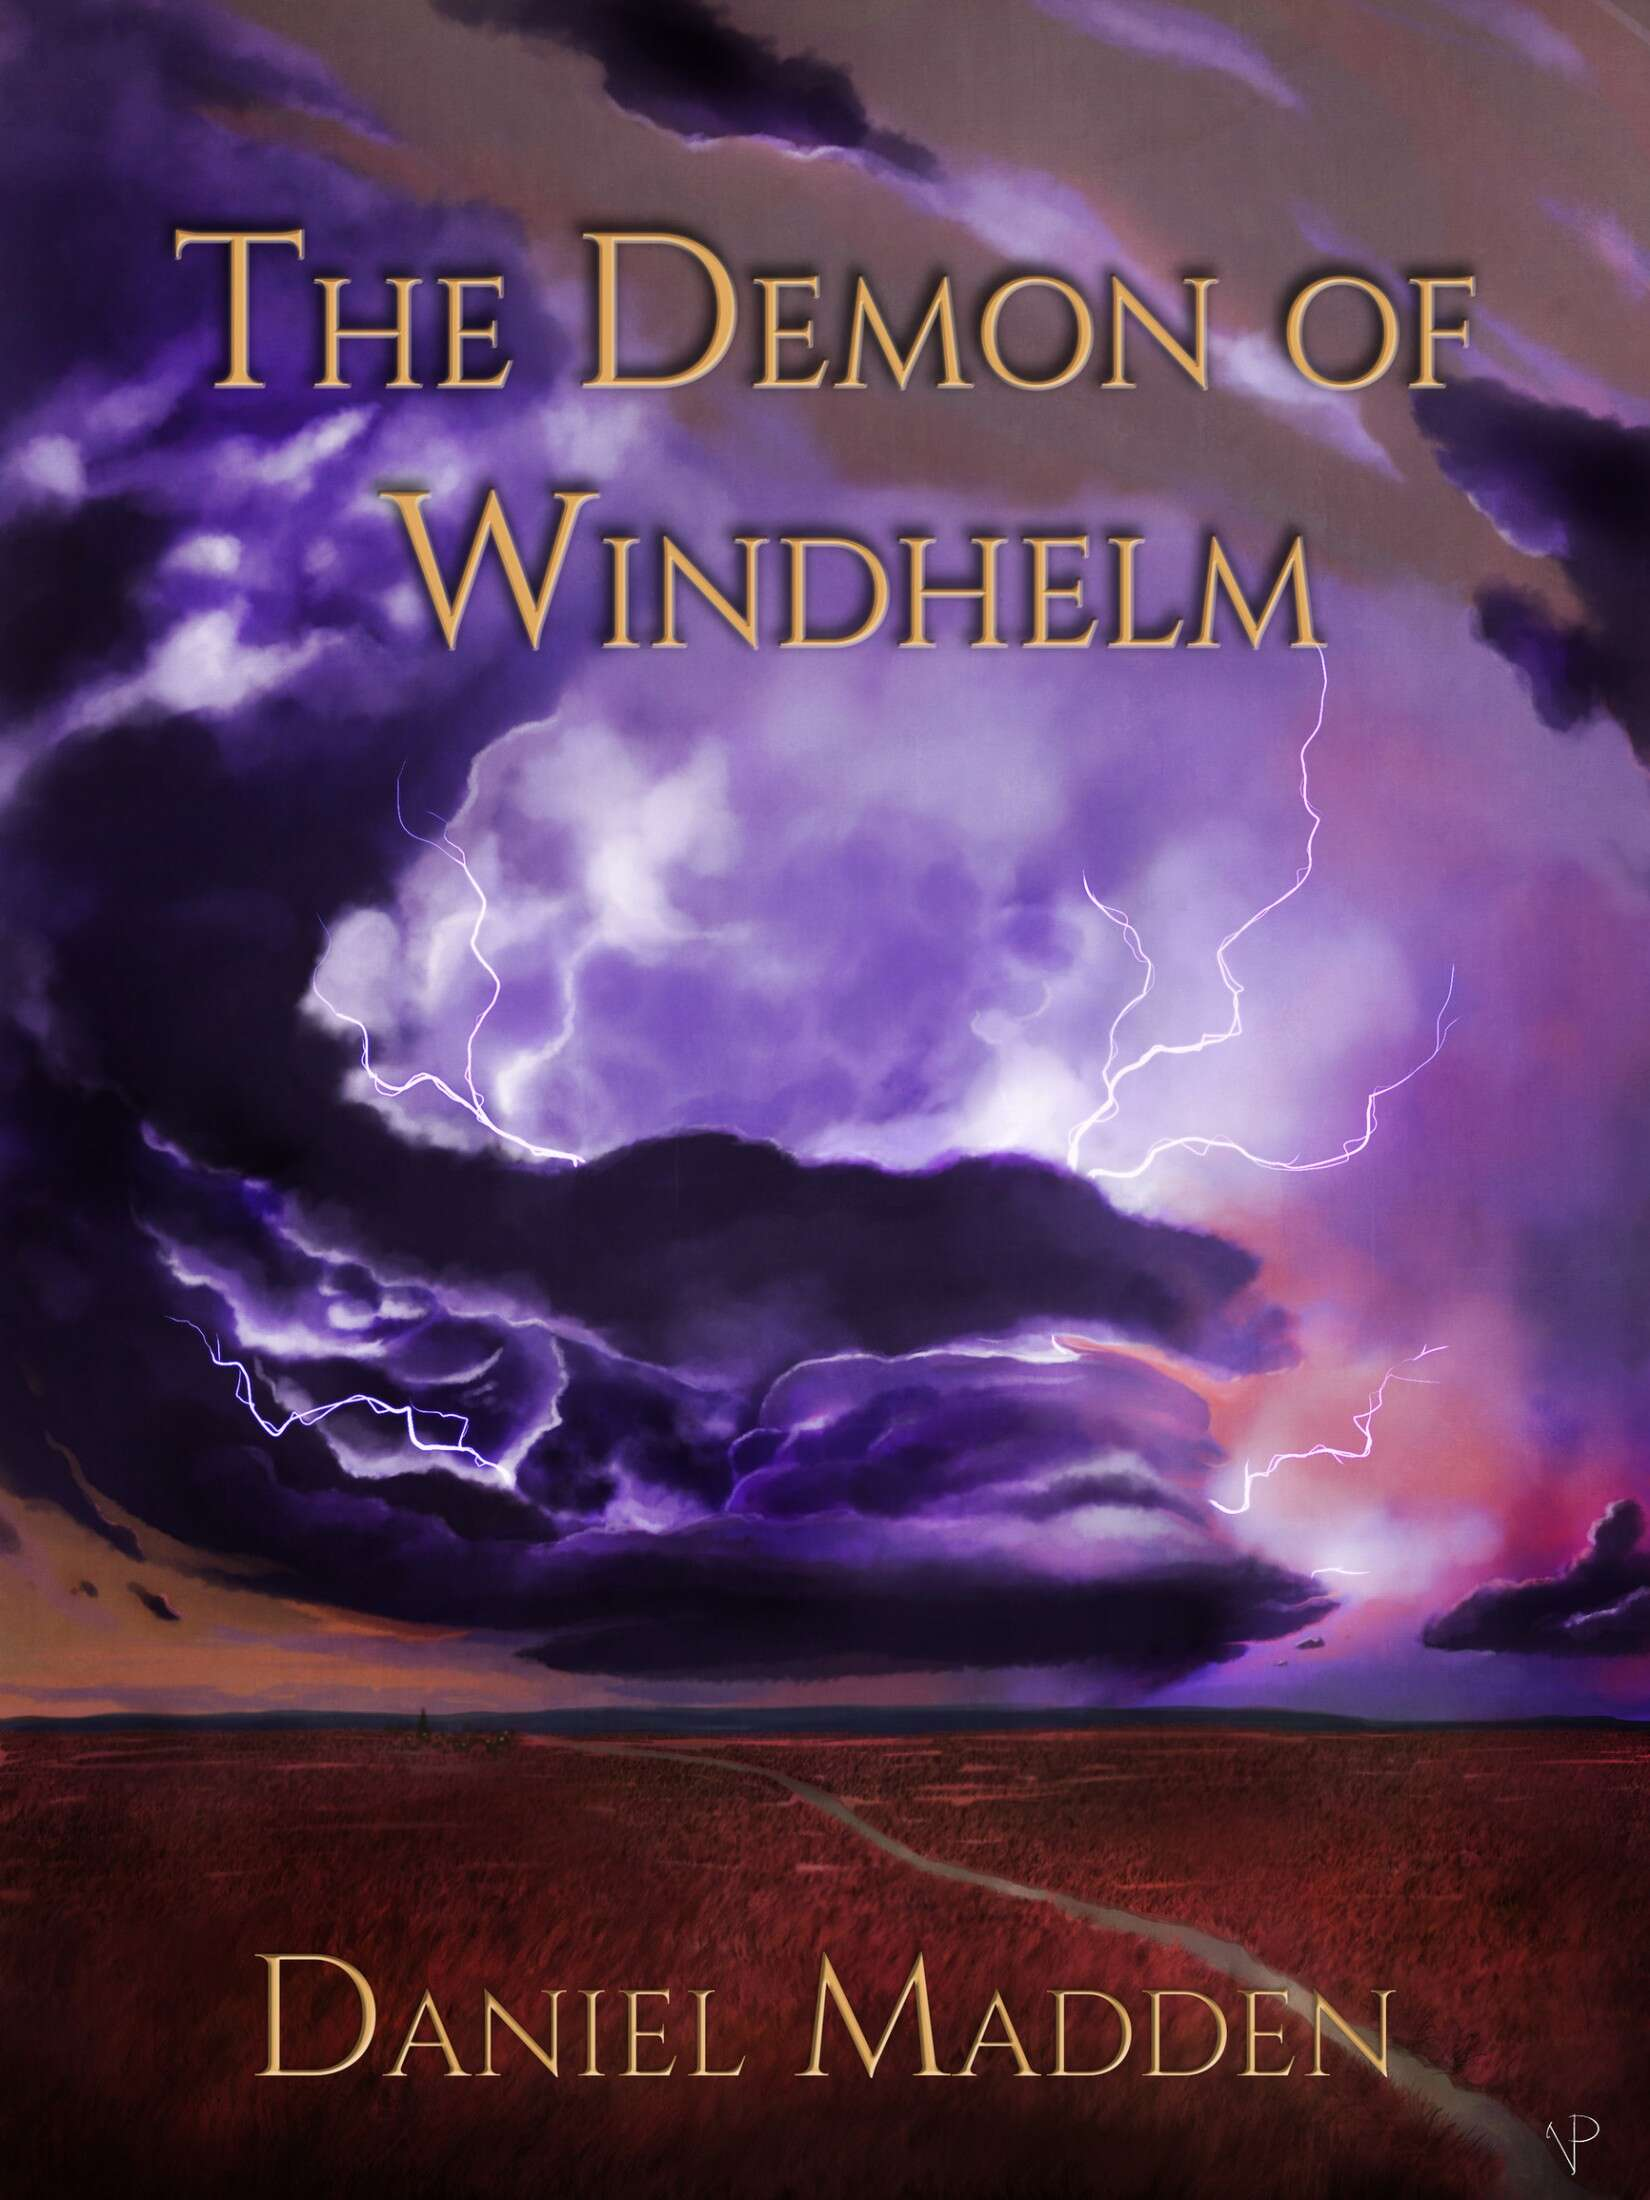 The Demon of Windhelm, front cover of Book